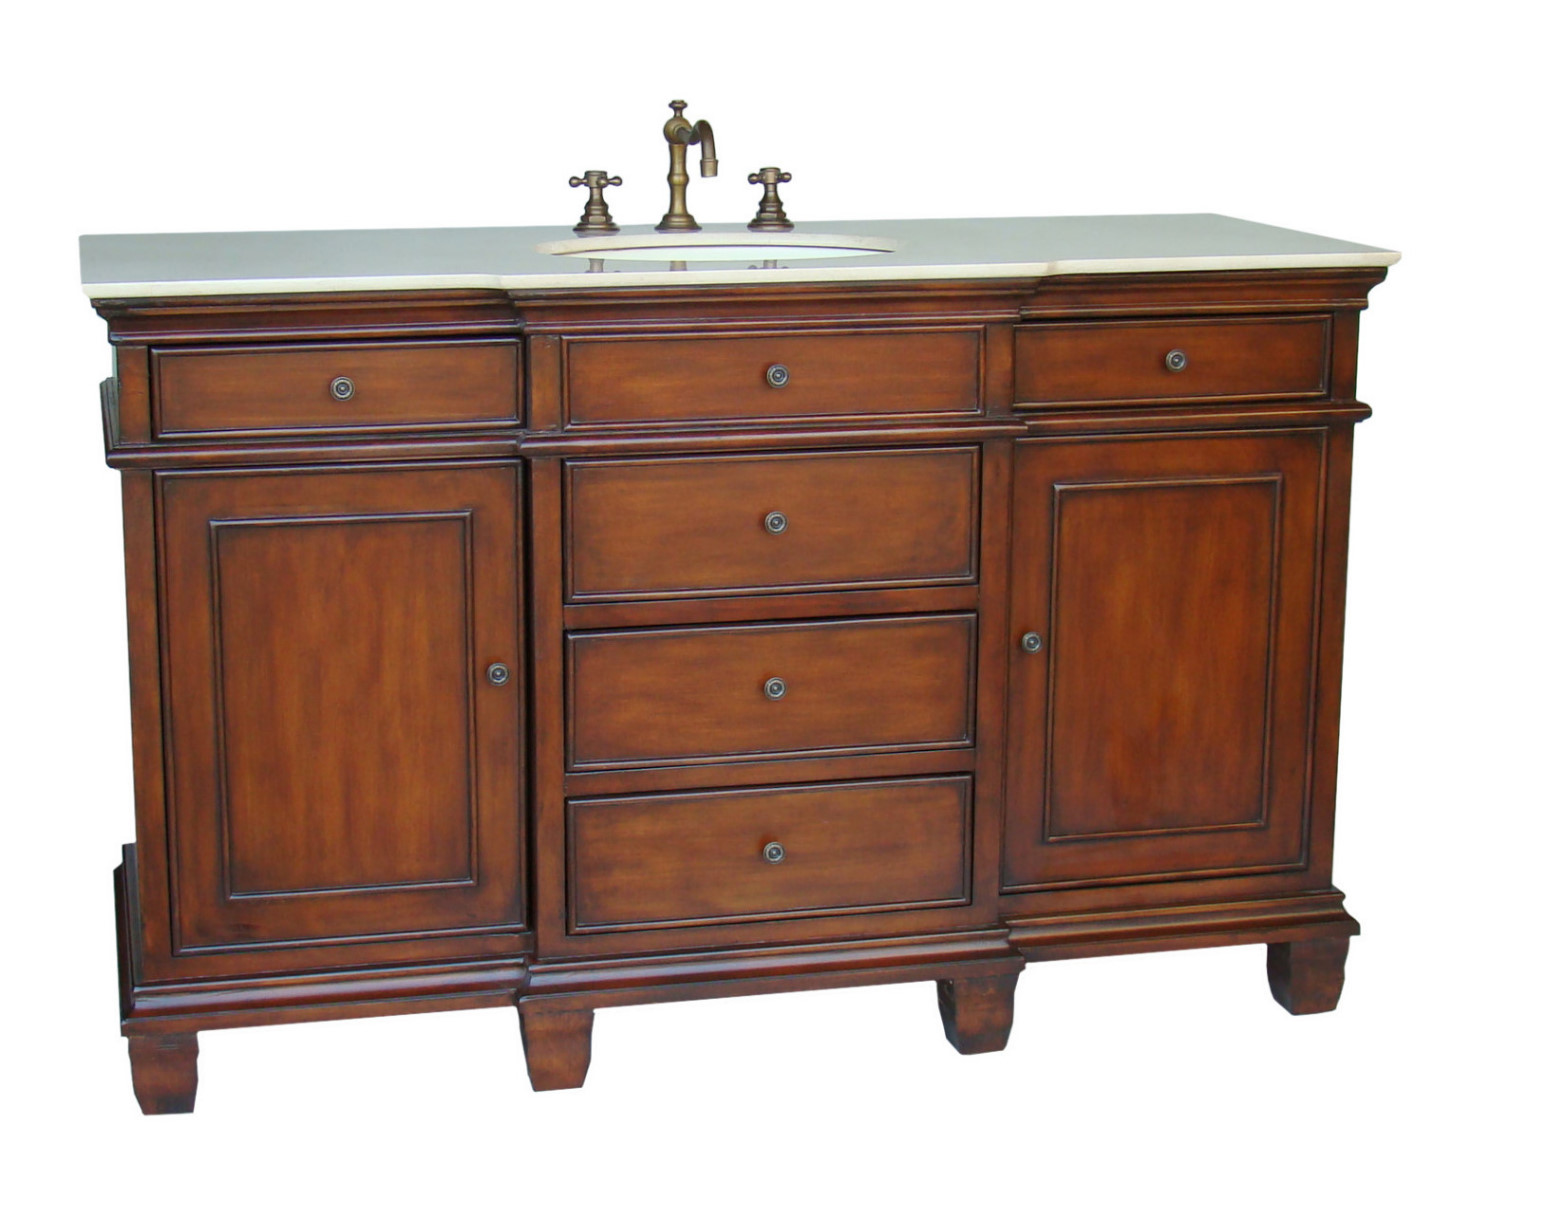 56-Inch Dunsmore Vanity Single Sink Vanity Chestnut Finish Vanity